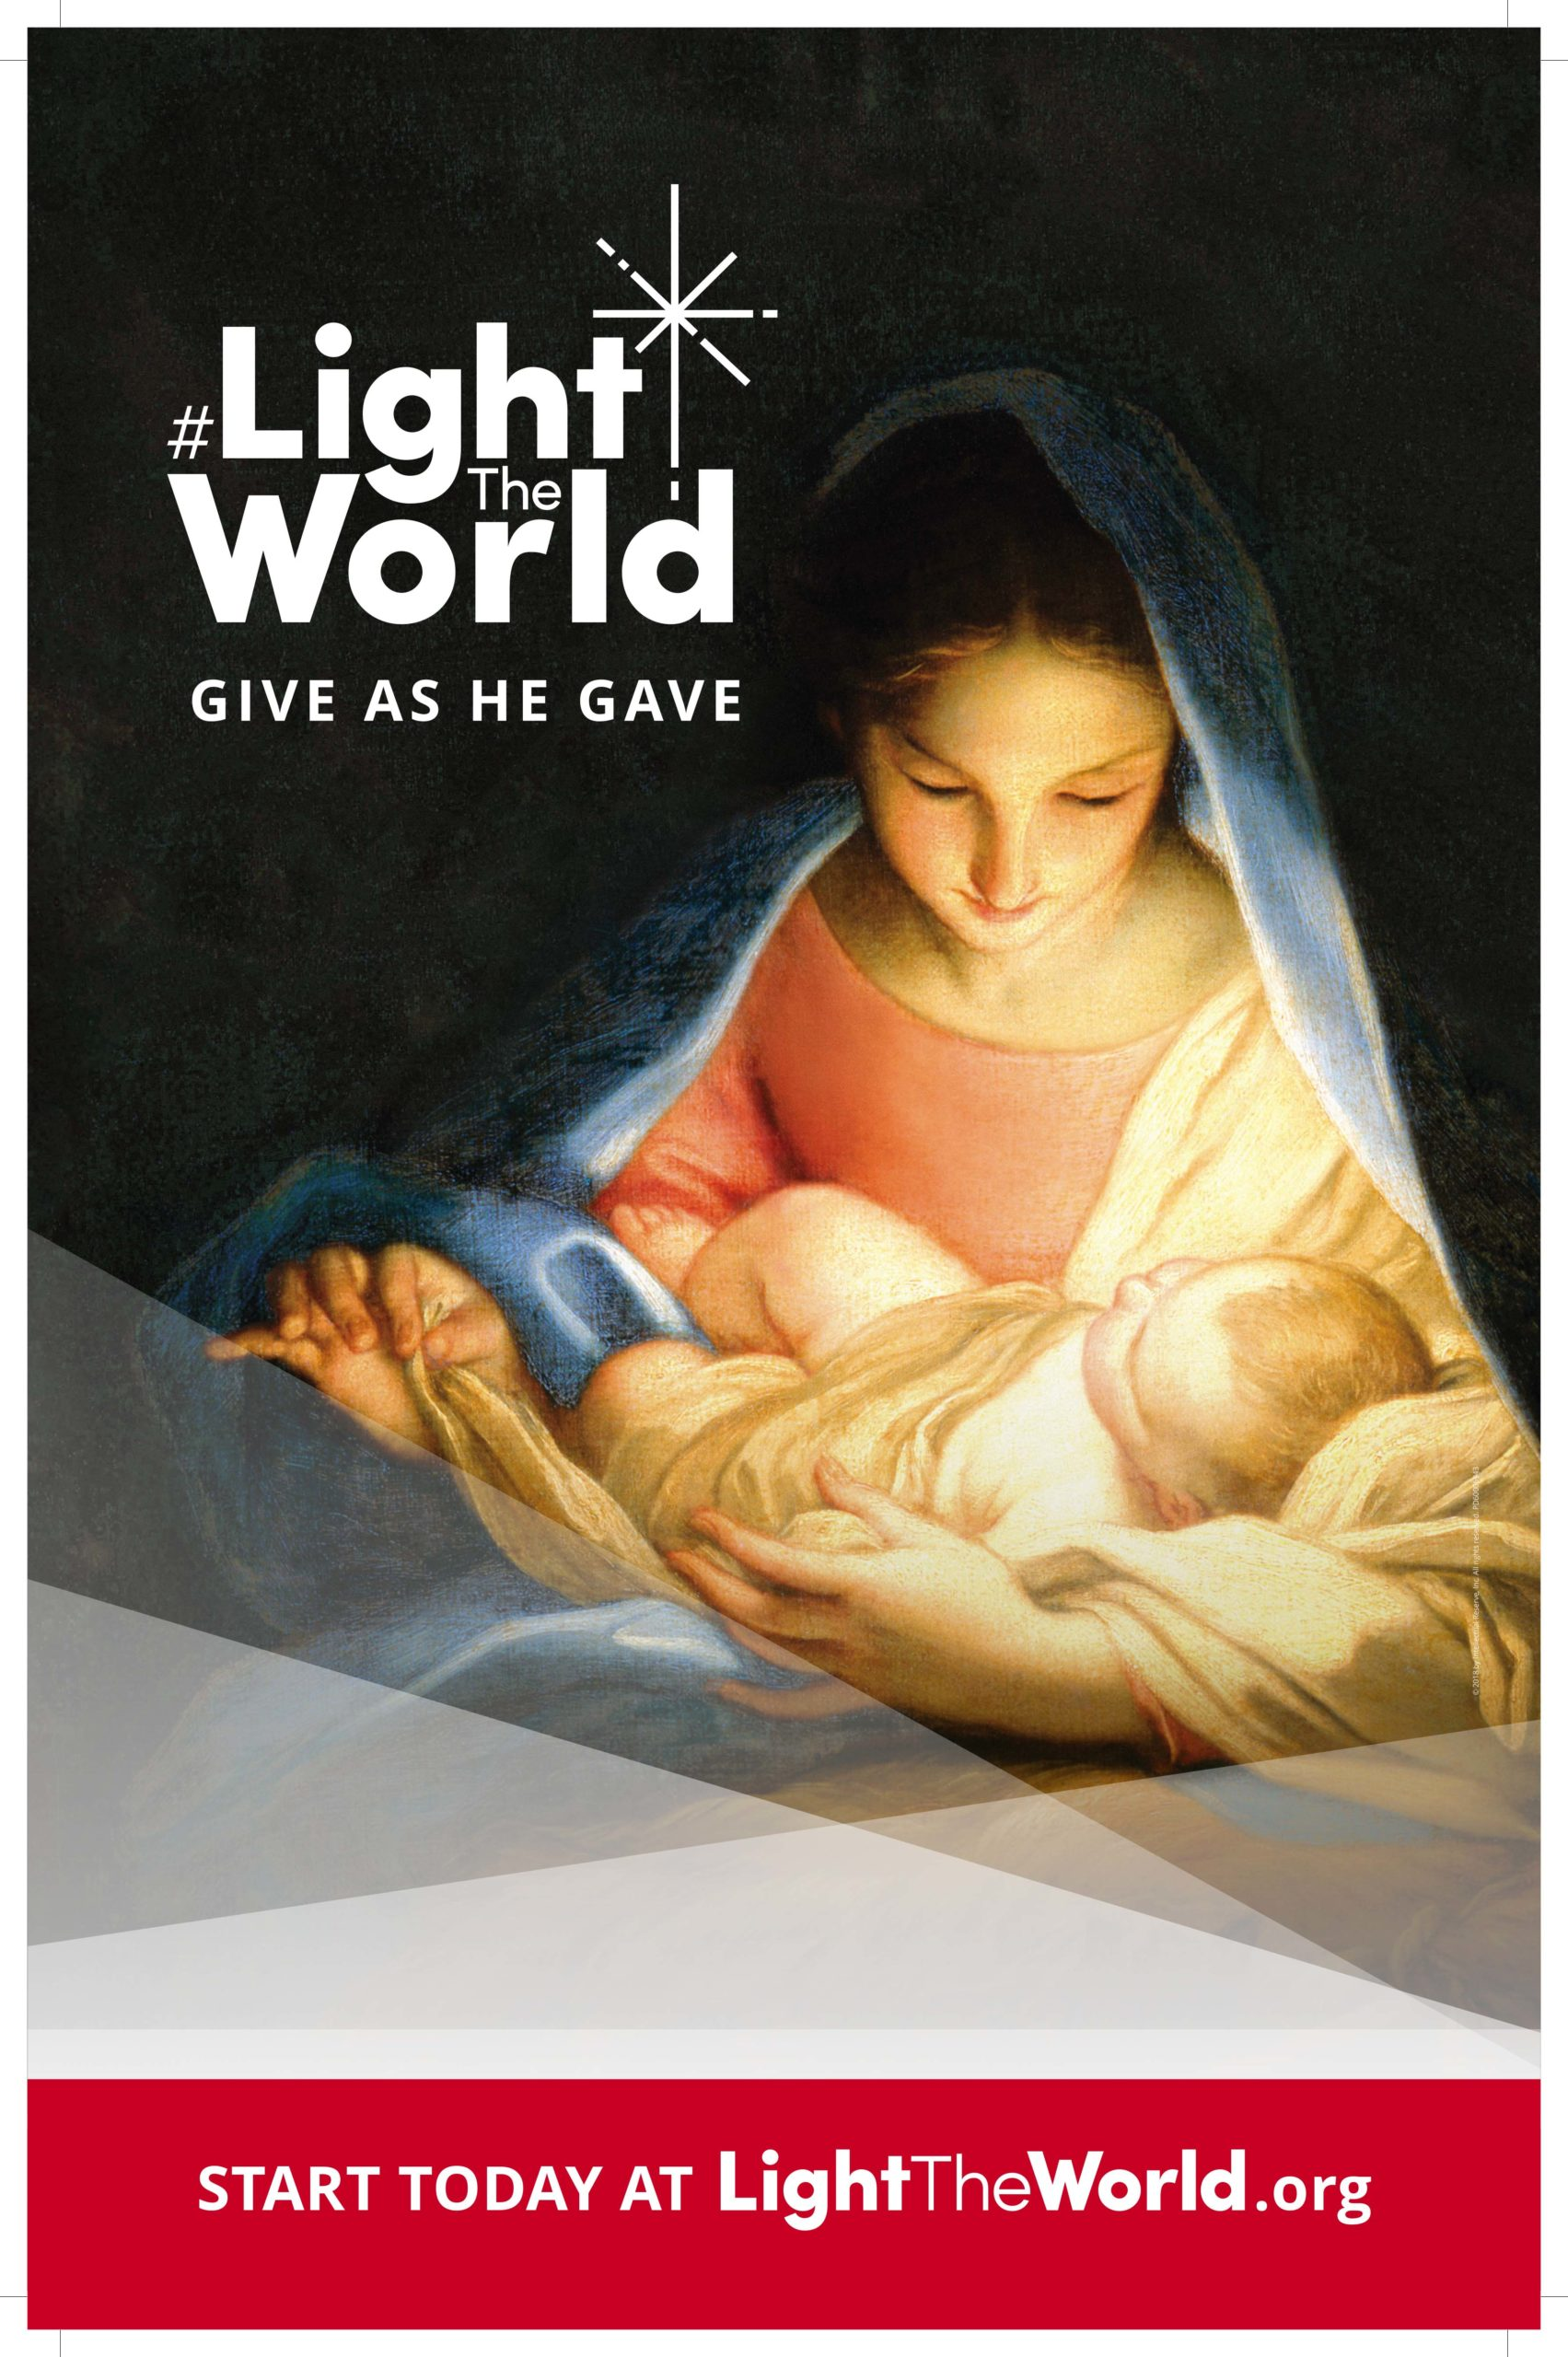 LIGHTtheWORLD this Christmas with Weekly Service Ideas